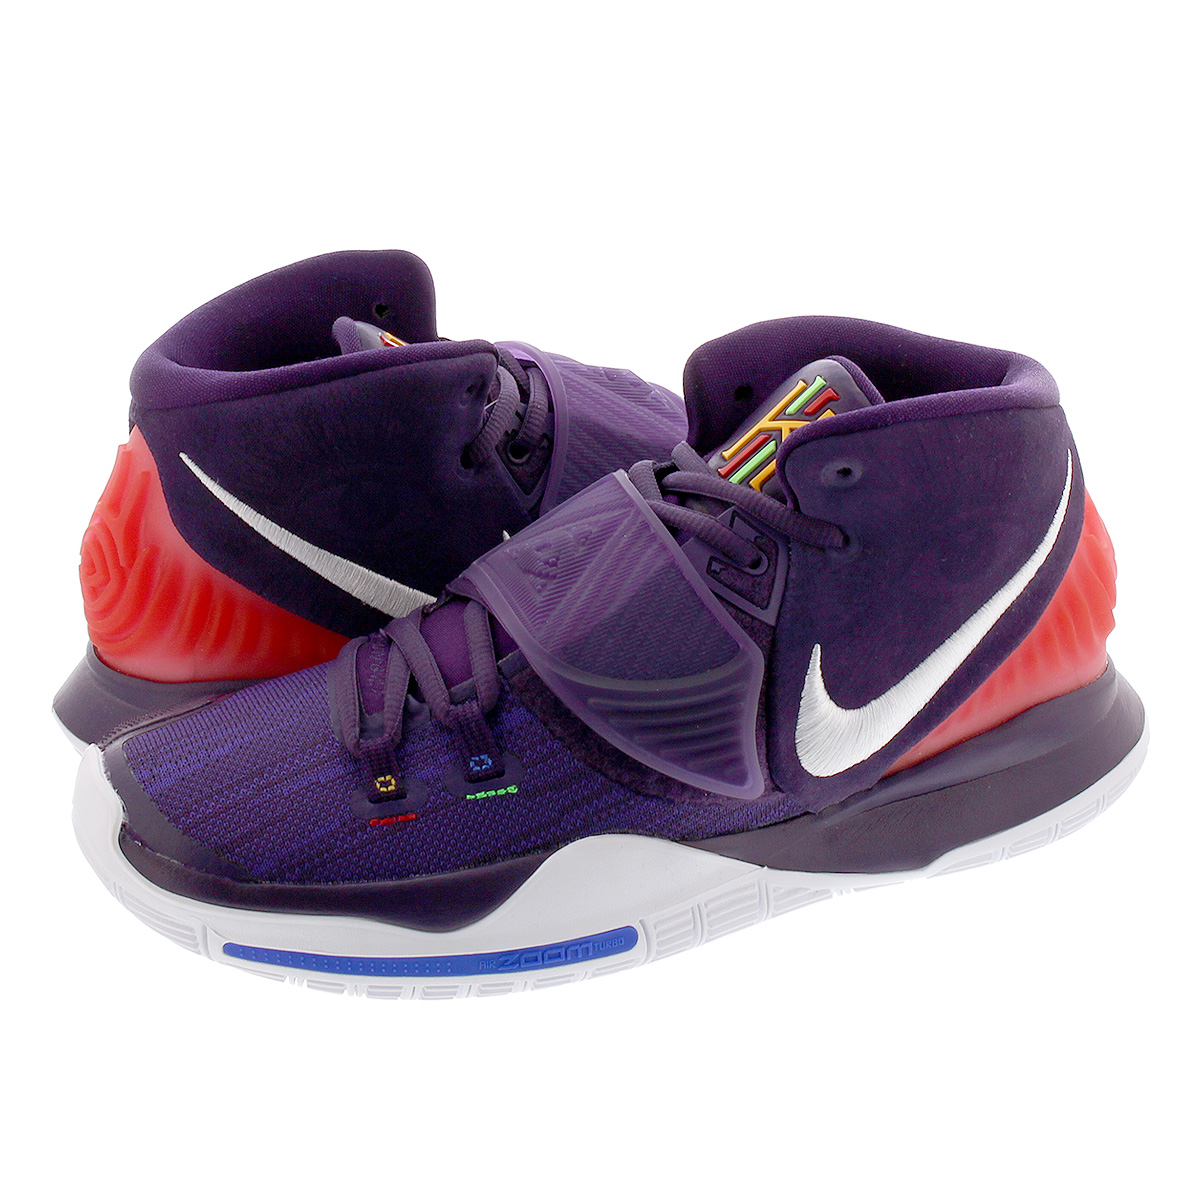 NIKE KYRIE 6 ナイキ カイリー 6 GRAND PURPLE/WHITE bq4630-500